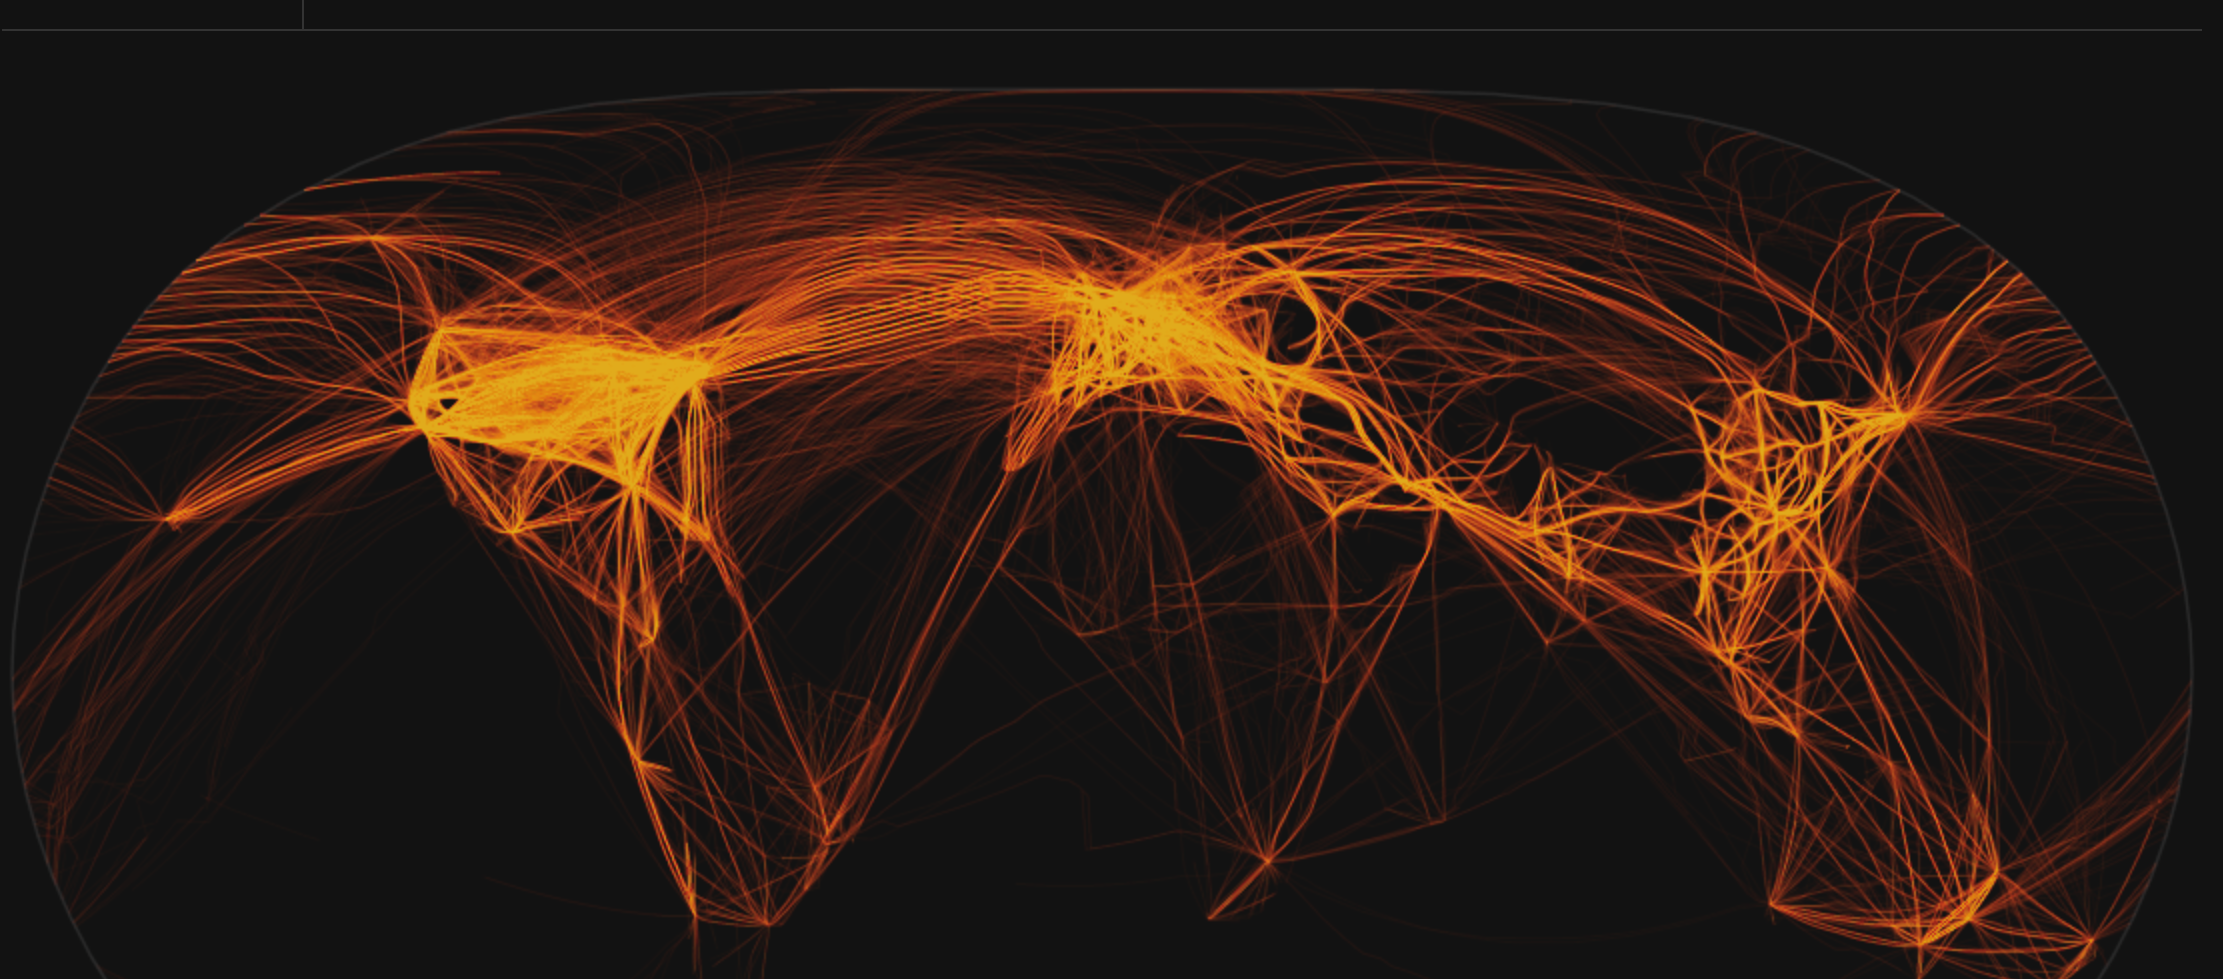 Image of more than 100,000 flights globally per day, courtesy of:  https://www.flightradar24.com